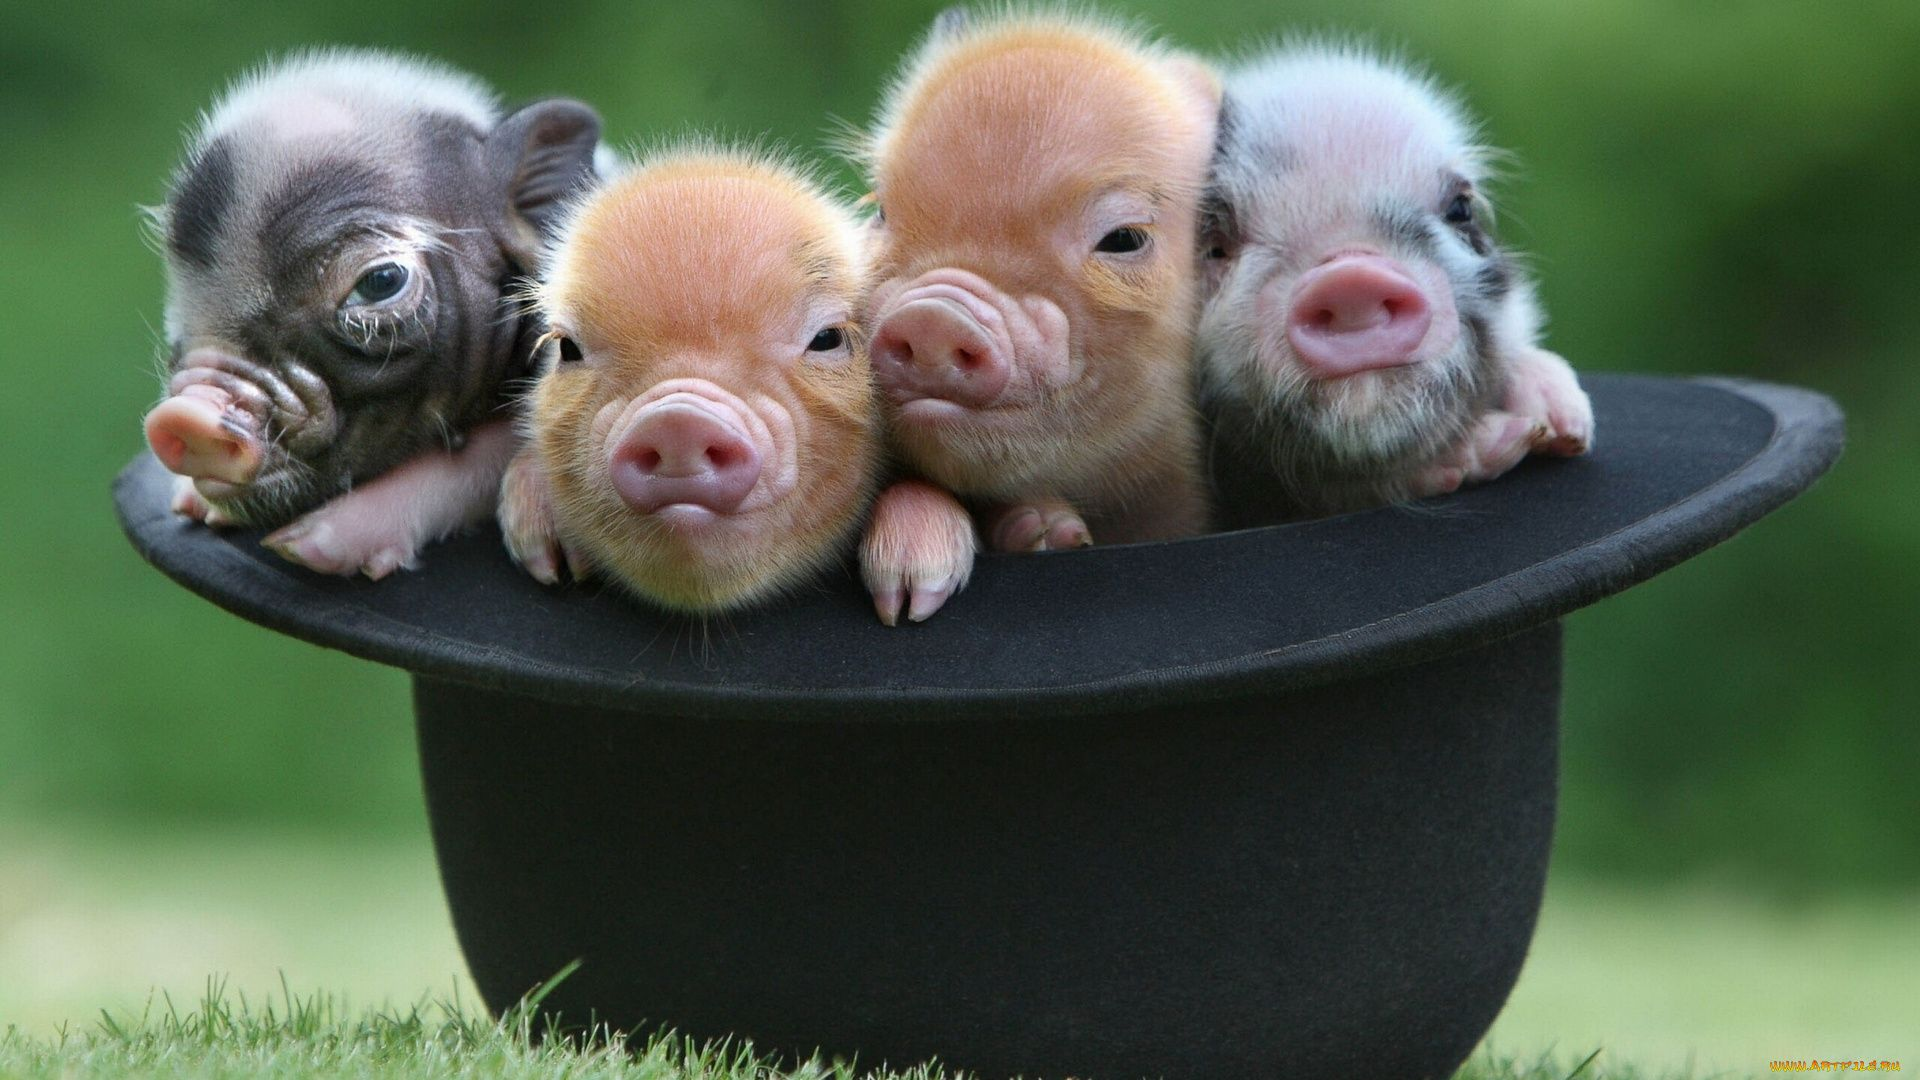 The Minipig Photo